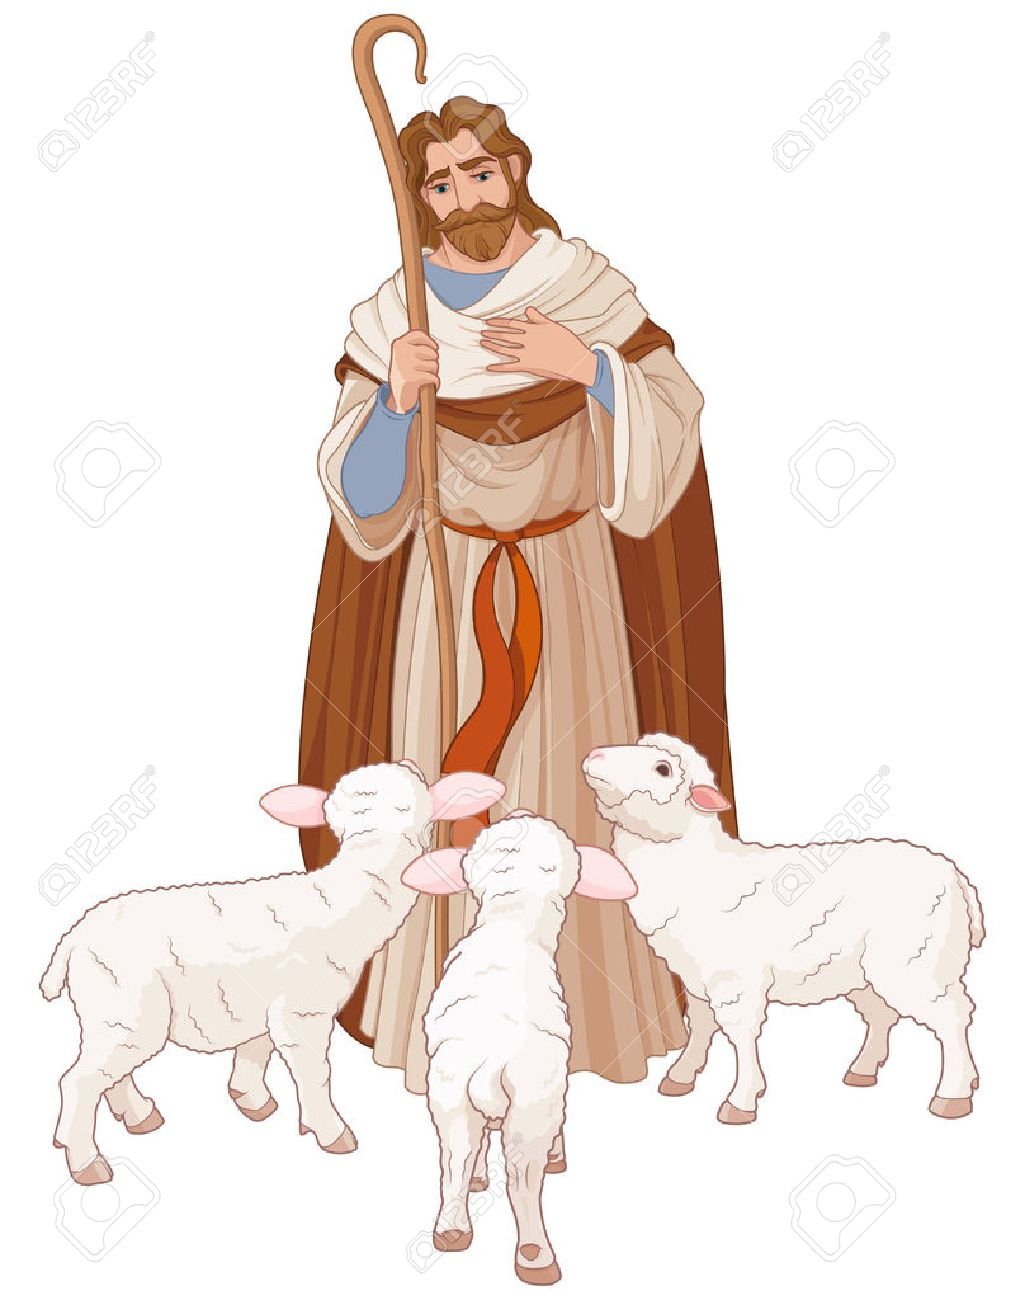 234 Lamb Of God Stock Vector Illustration And Royalty Free Lamb Of ... for Lamb Of God Clipart  186ref